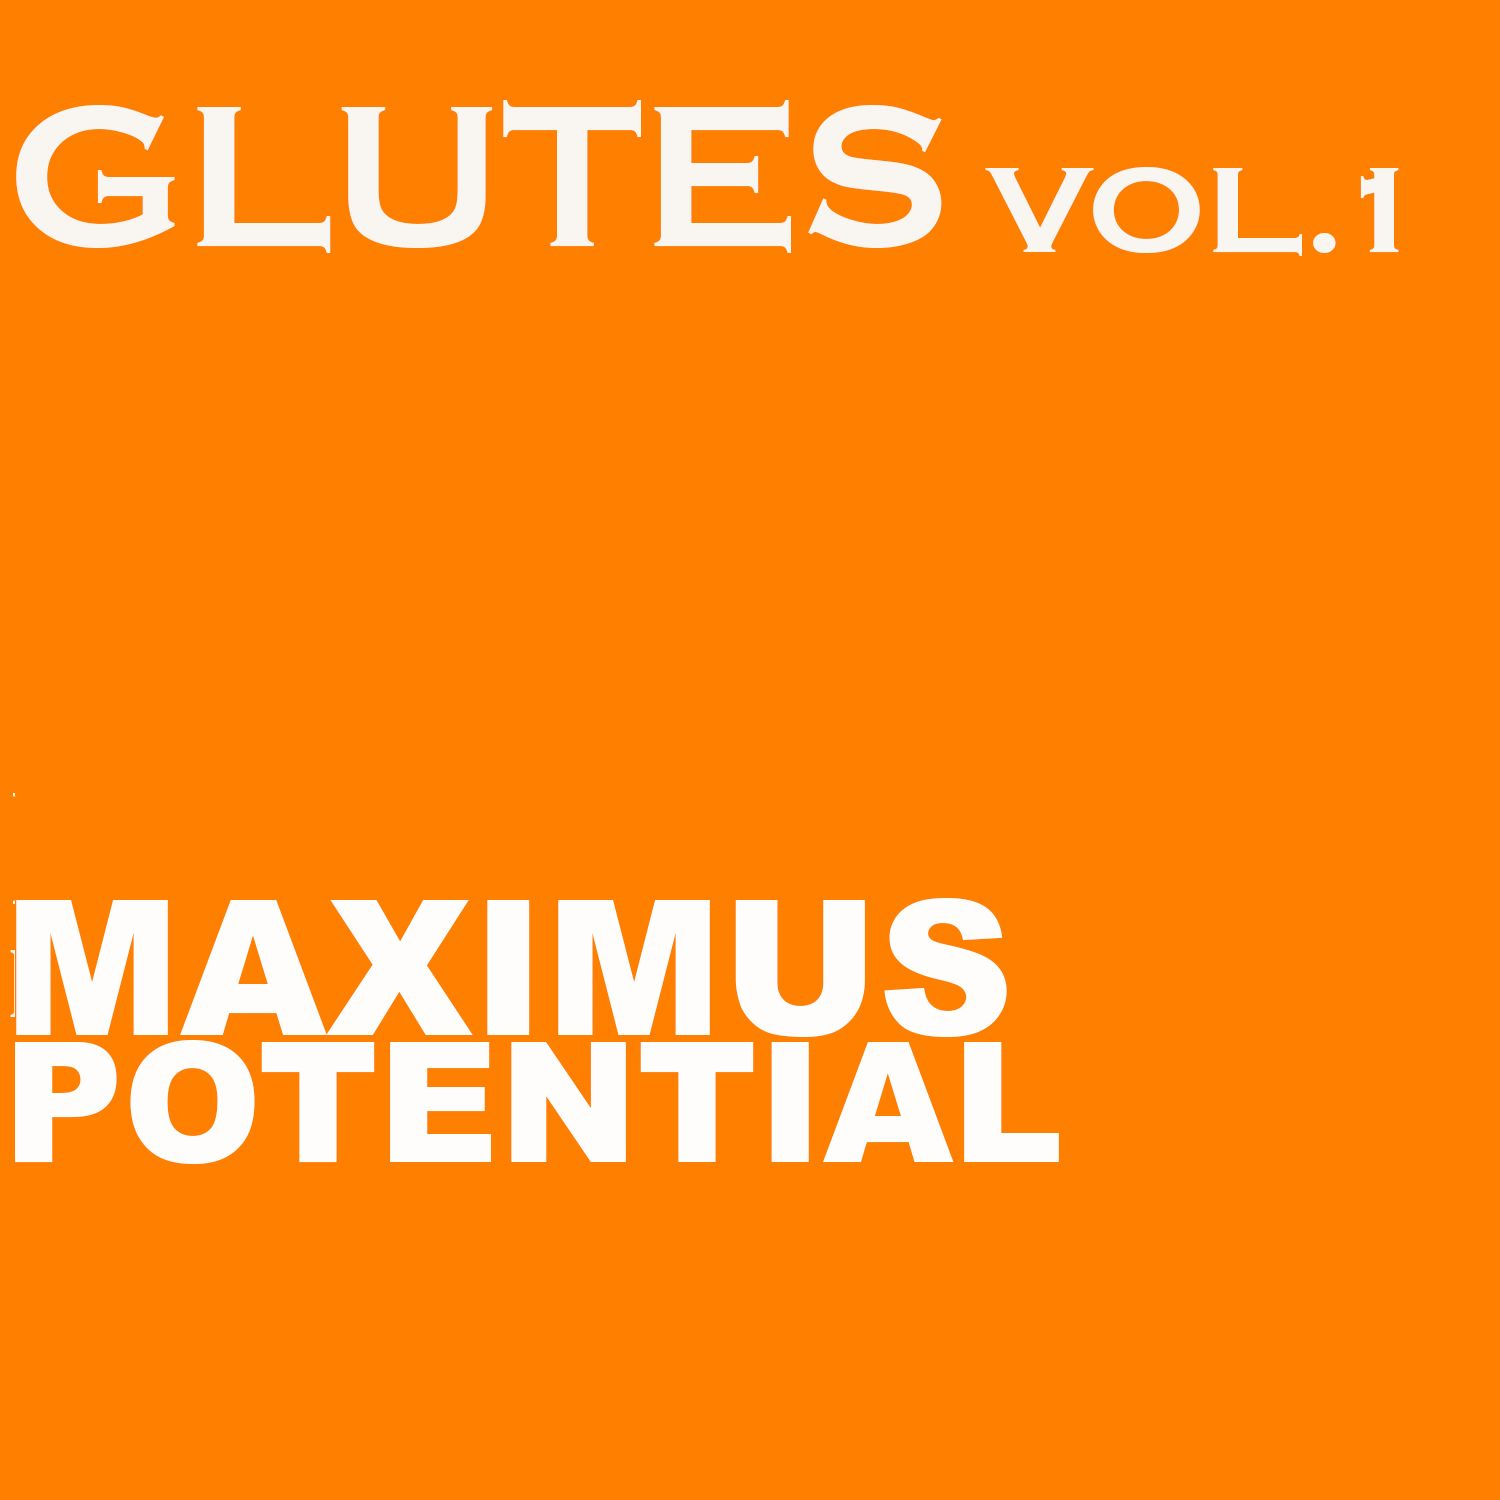 Glute Training Vol.1 Release from ChanelCollette.com  http://bit.ly/1zuWCAC